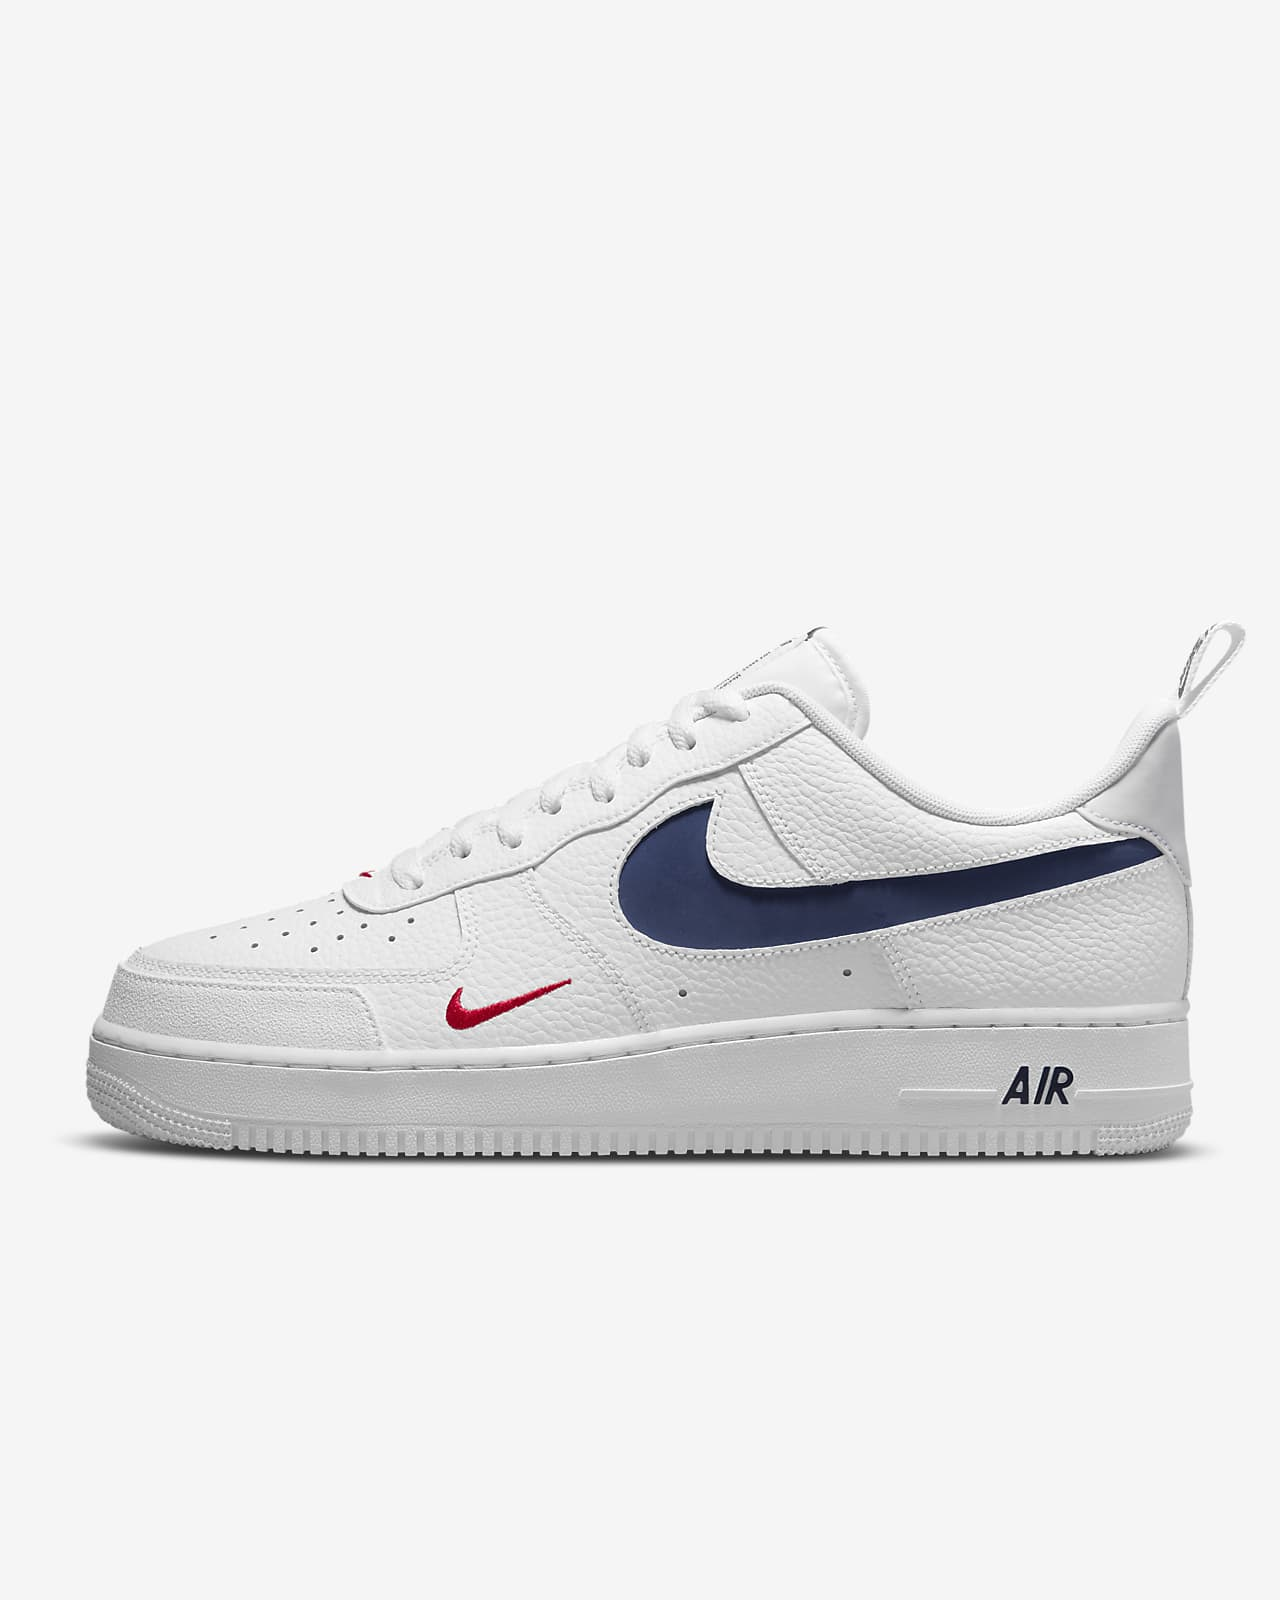 Chaussure Nike Air Force 1 LV8 pour Homme